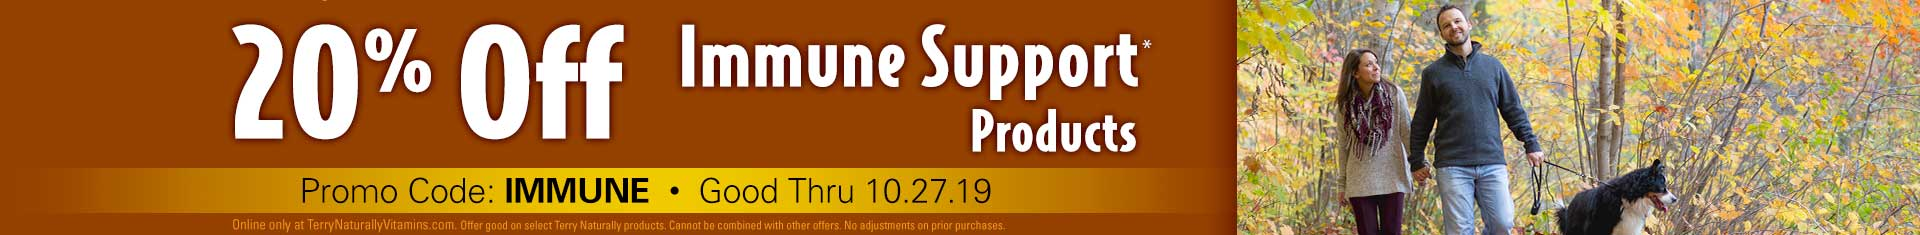 Immune Support Sale